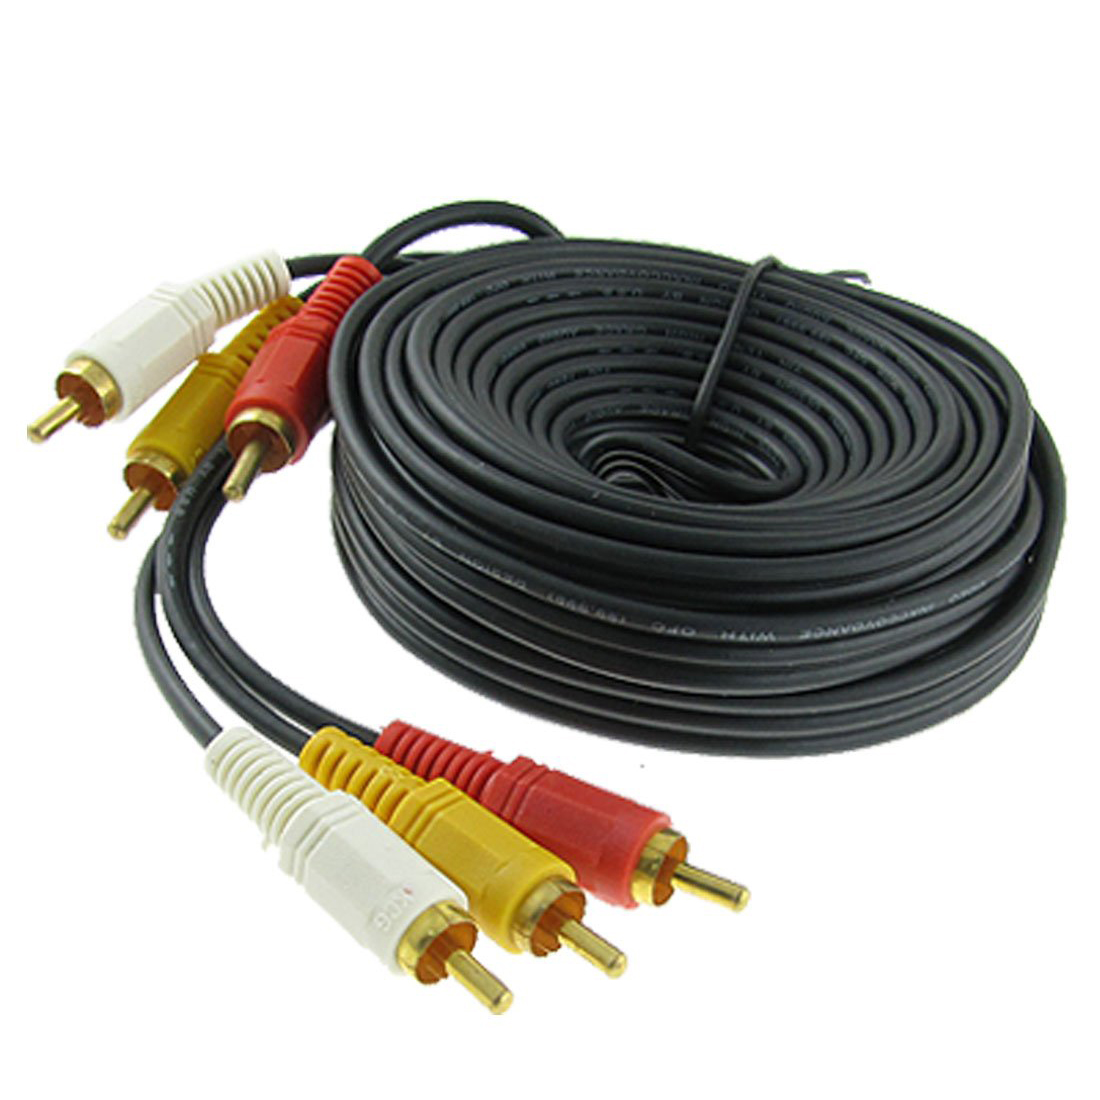 HFES Triple 3 RCA Male to Male Audio Video DVD TV AV Cable 4.6M Long Black(China (Mainland))